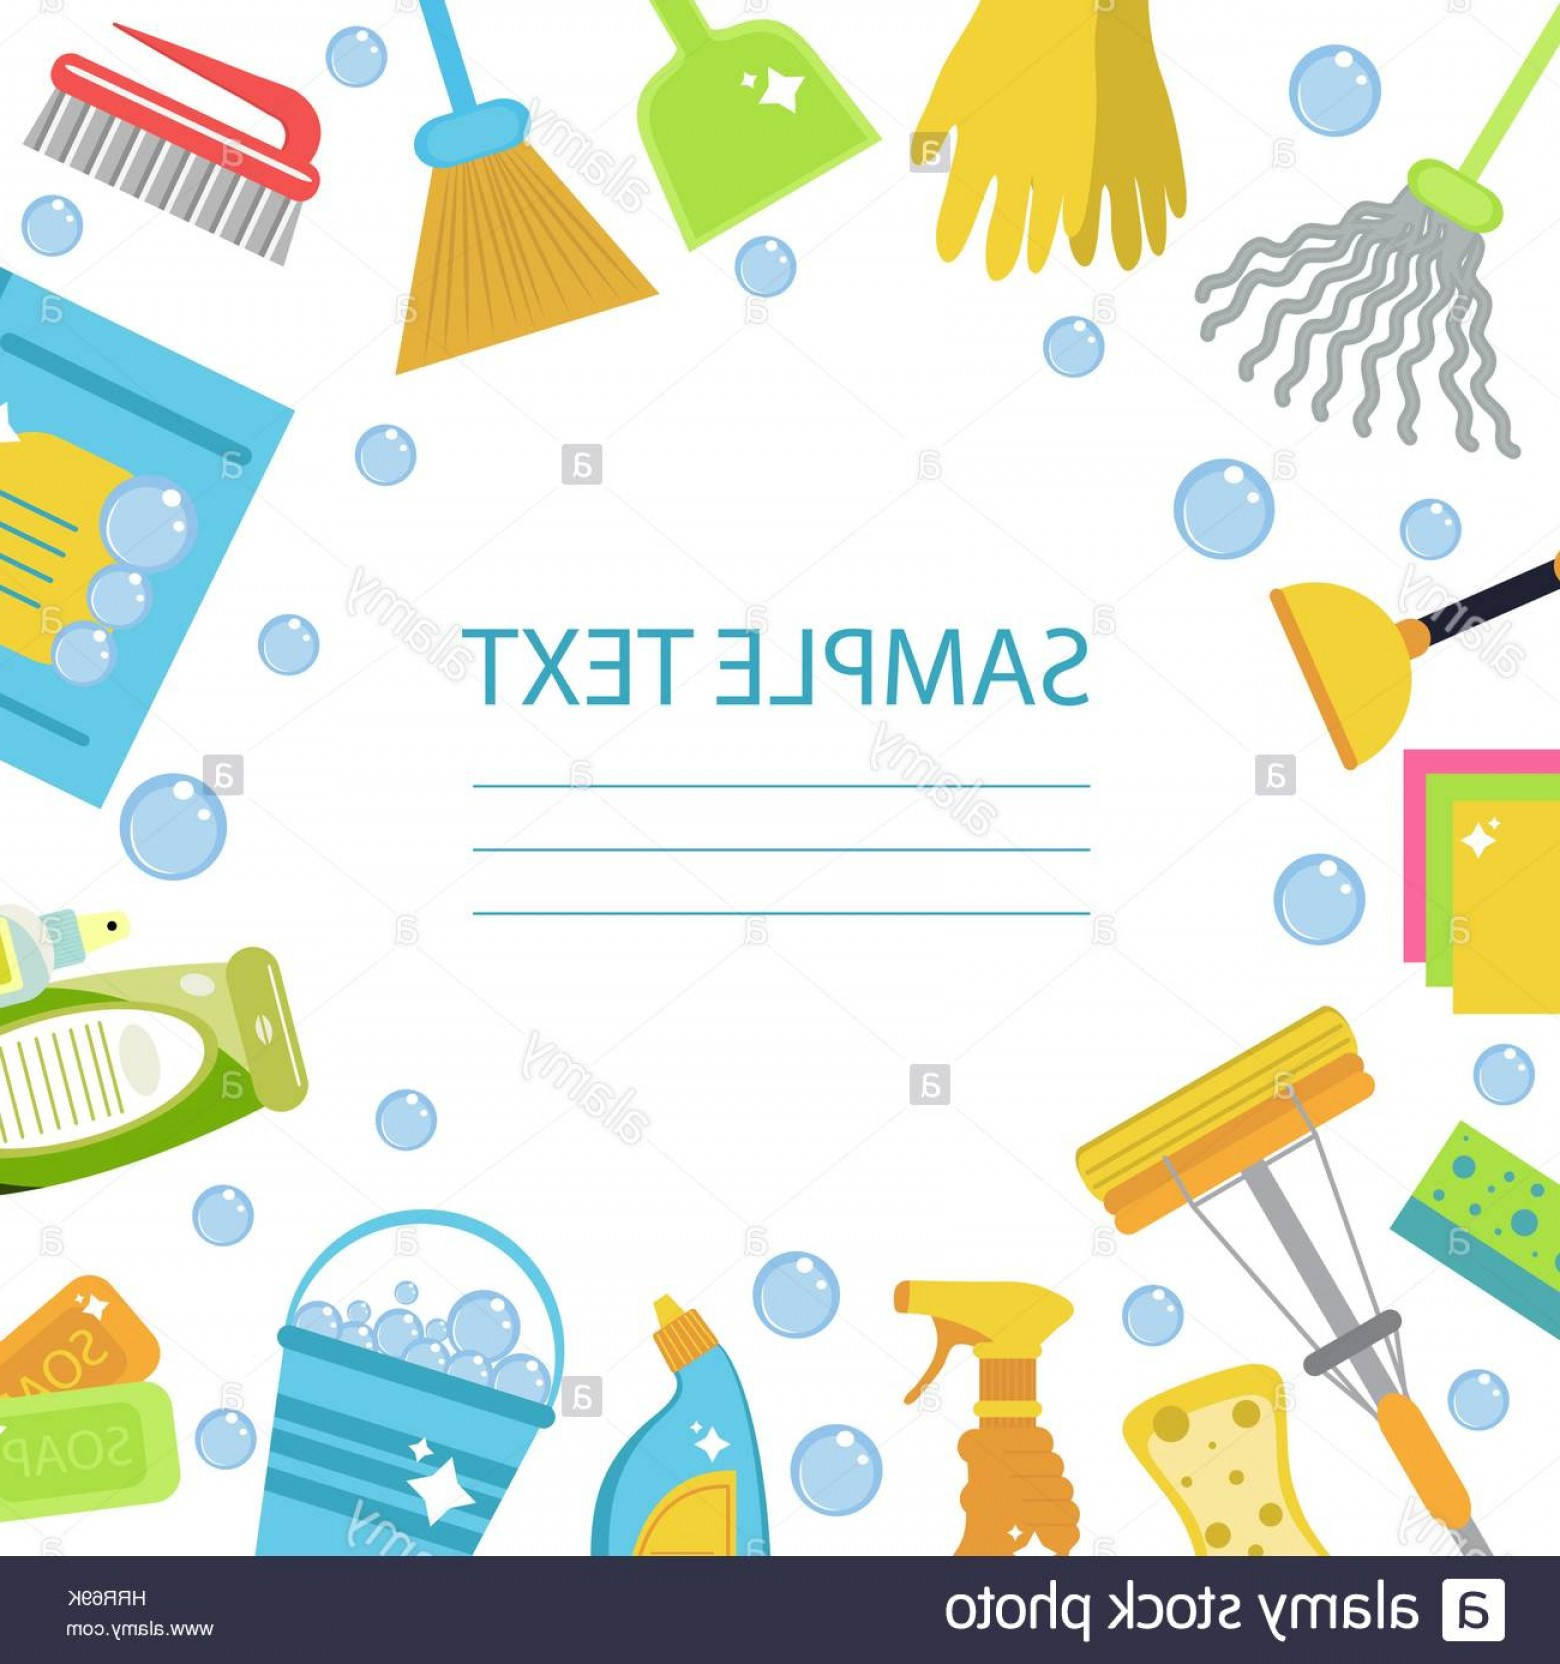 Tools For Text Vector: Artistic Stock Photo Set Of Icons For Cleaning Tools Cleaning Template For Text Background